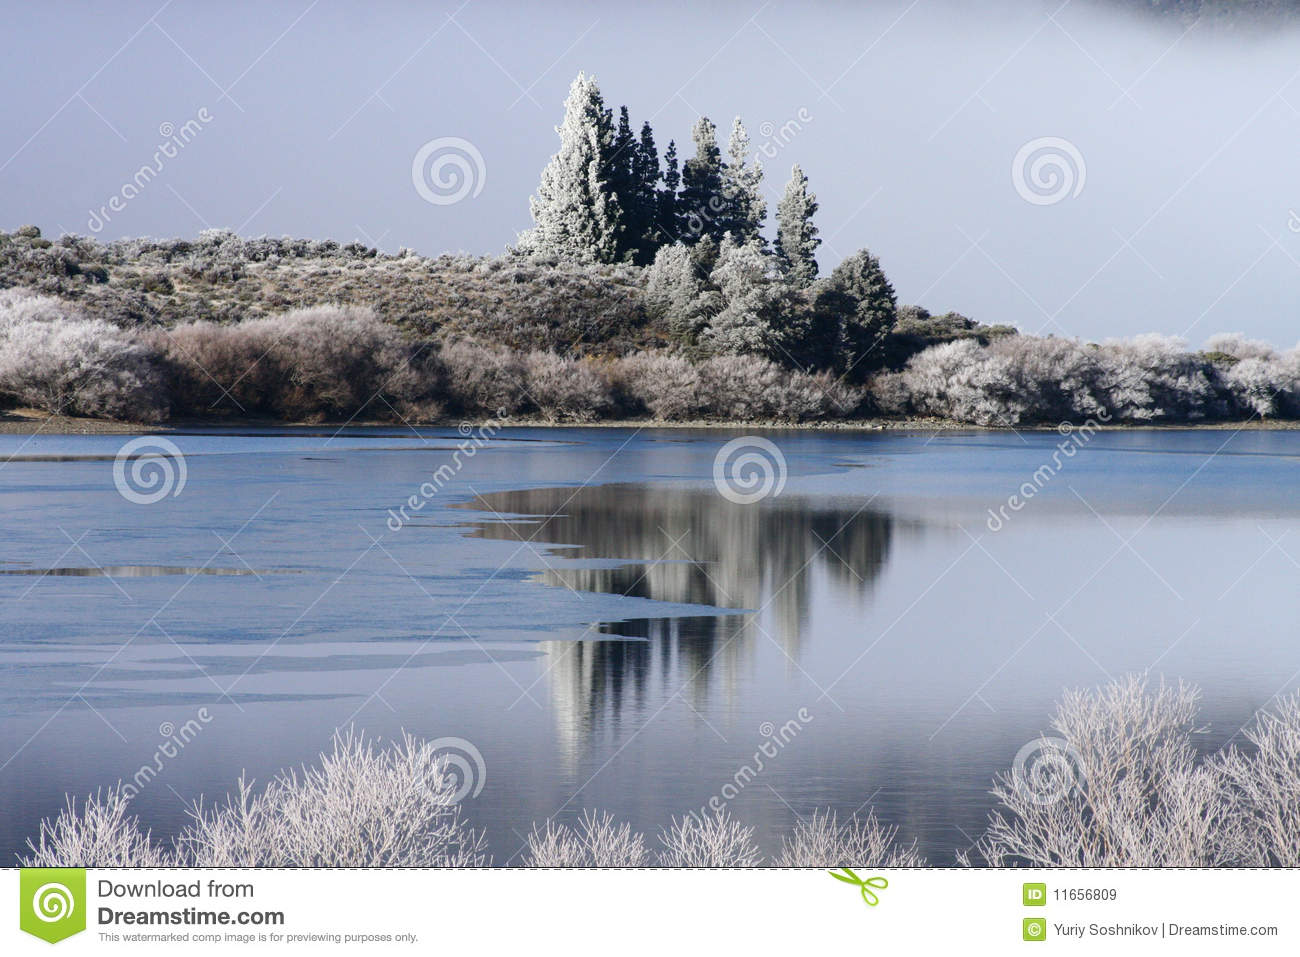 New Zealand Time Image: Winter Time In New Zealand Stock Image. Image Of Square